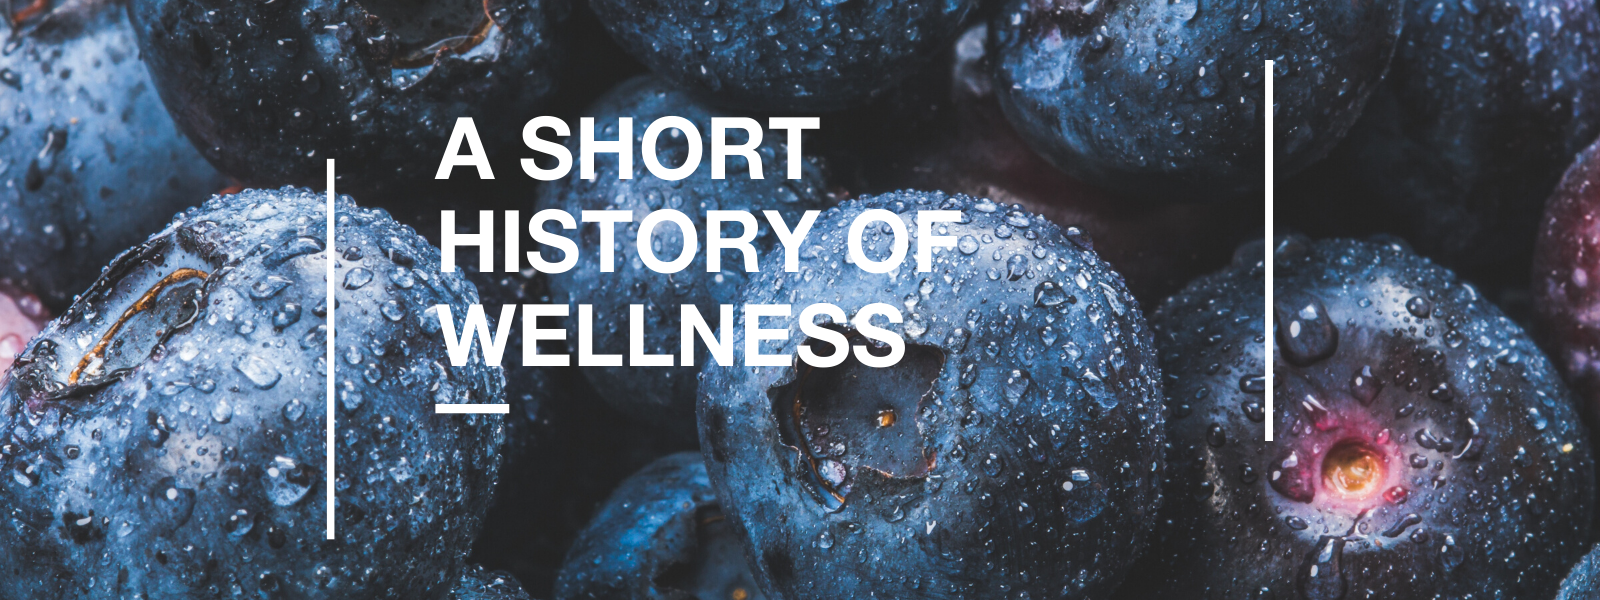 Where did wellness come from? And where will it go? A short history of wellness